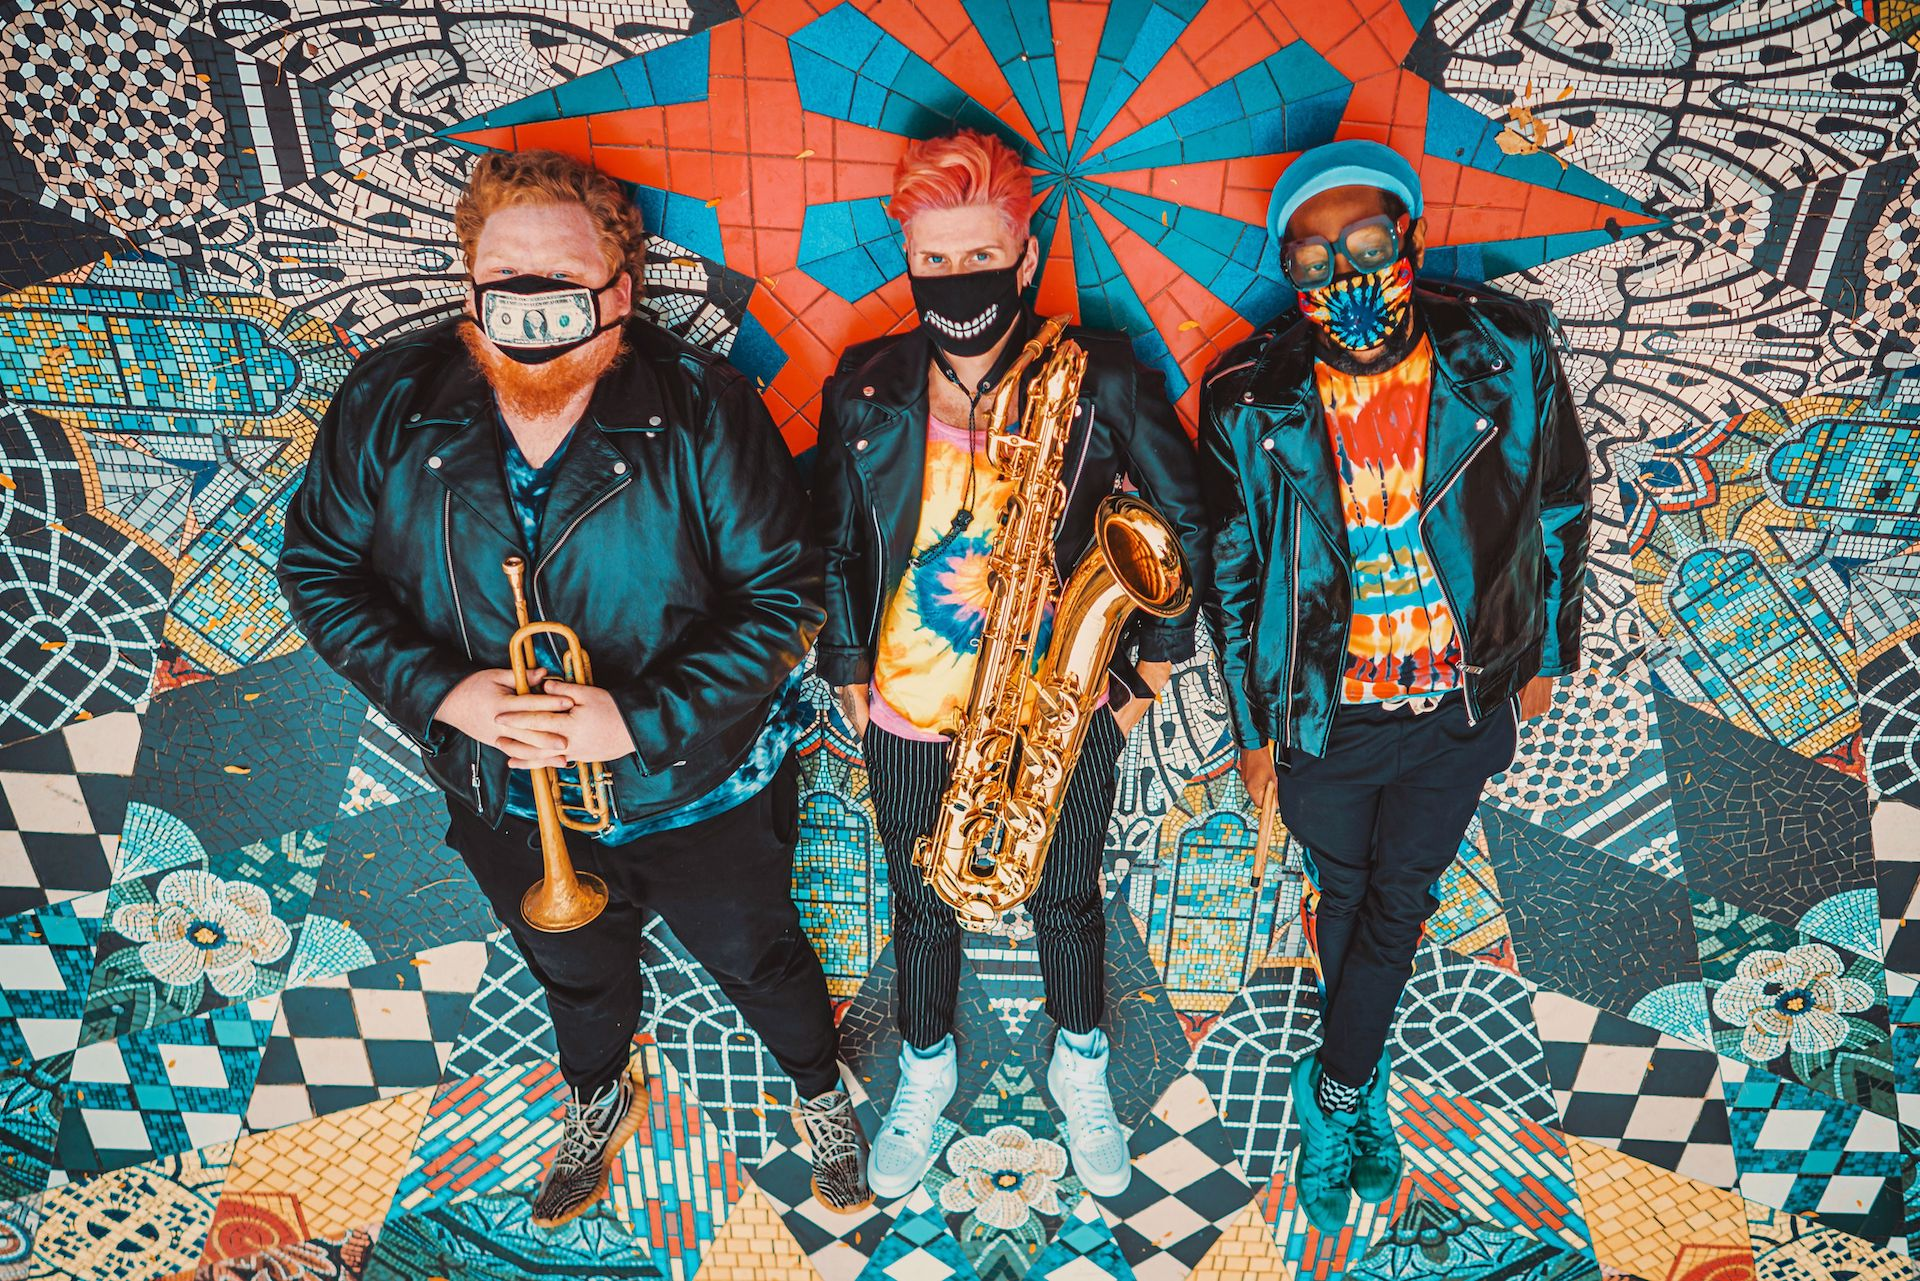 Too Many Zooz Booking Agent